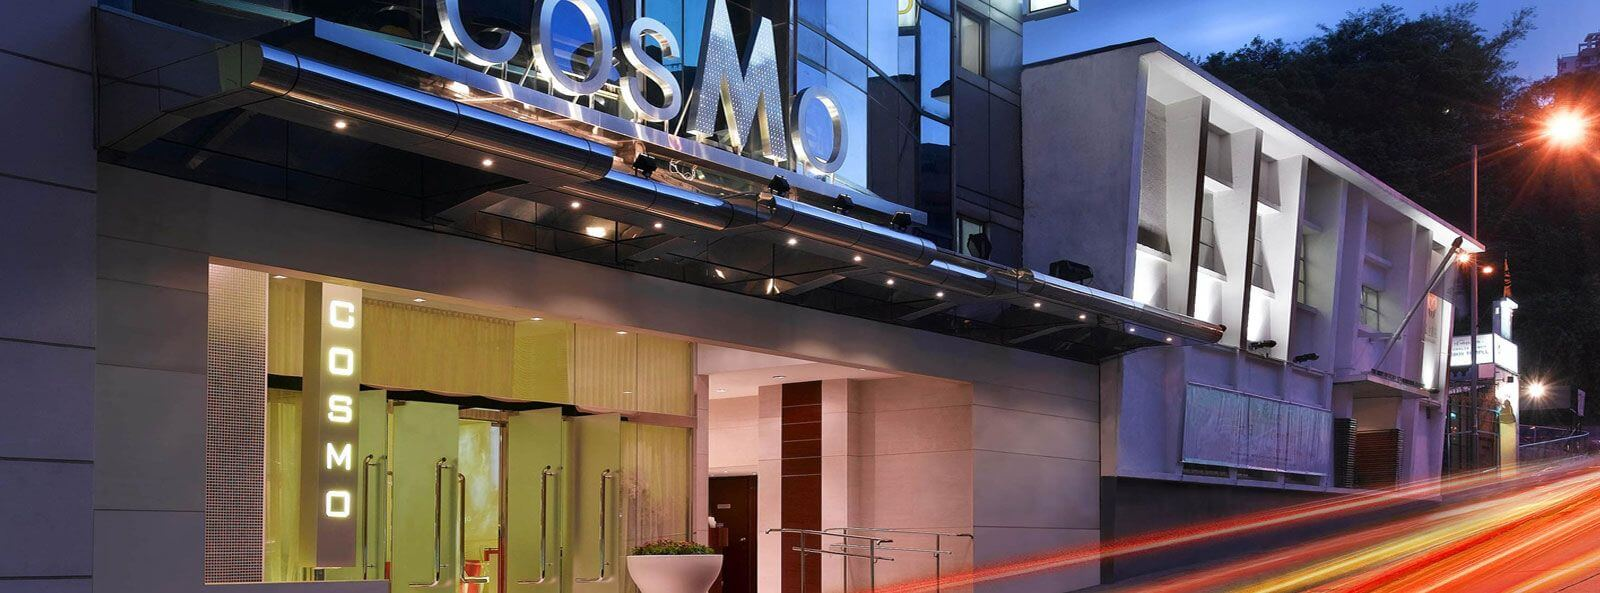 Cosmo Hotel Best Rate Guaranteed